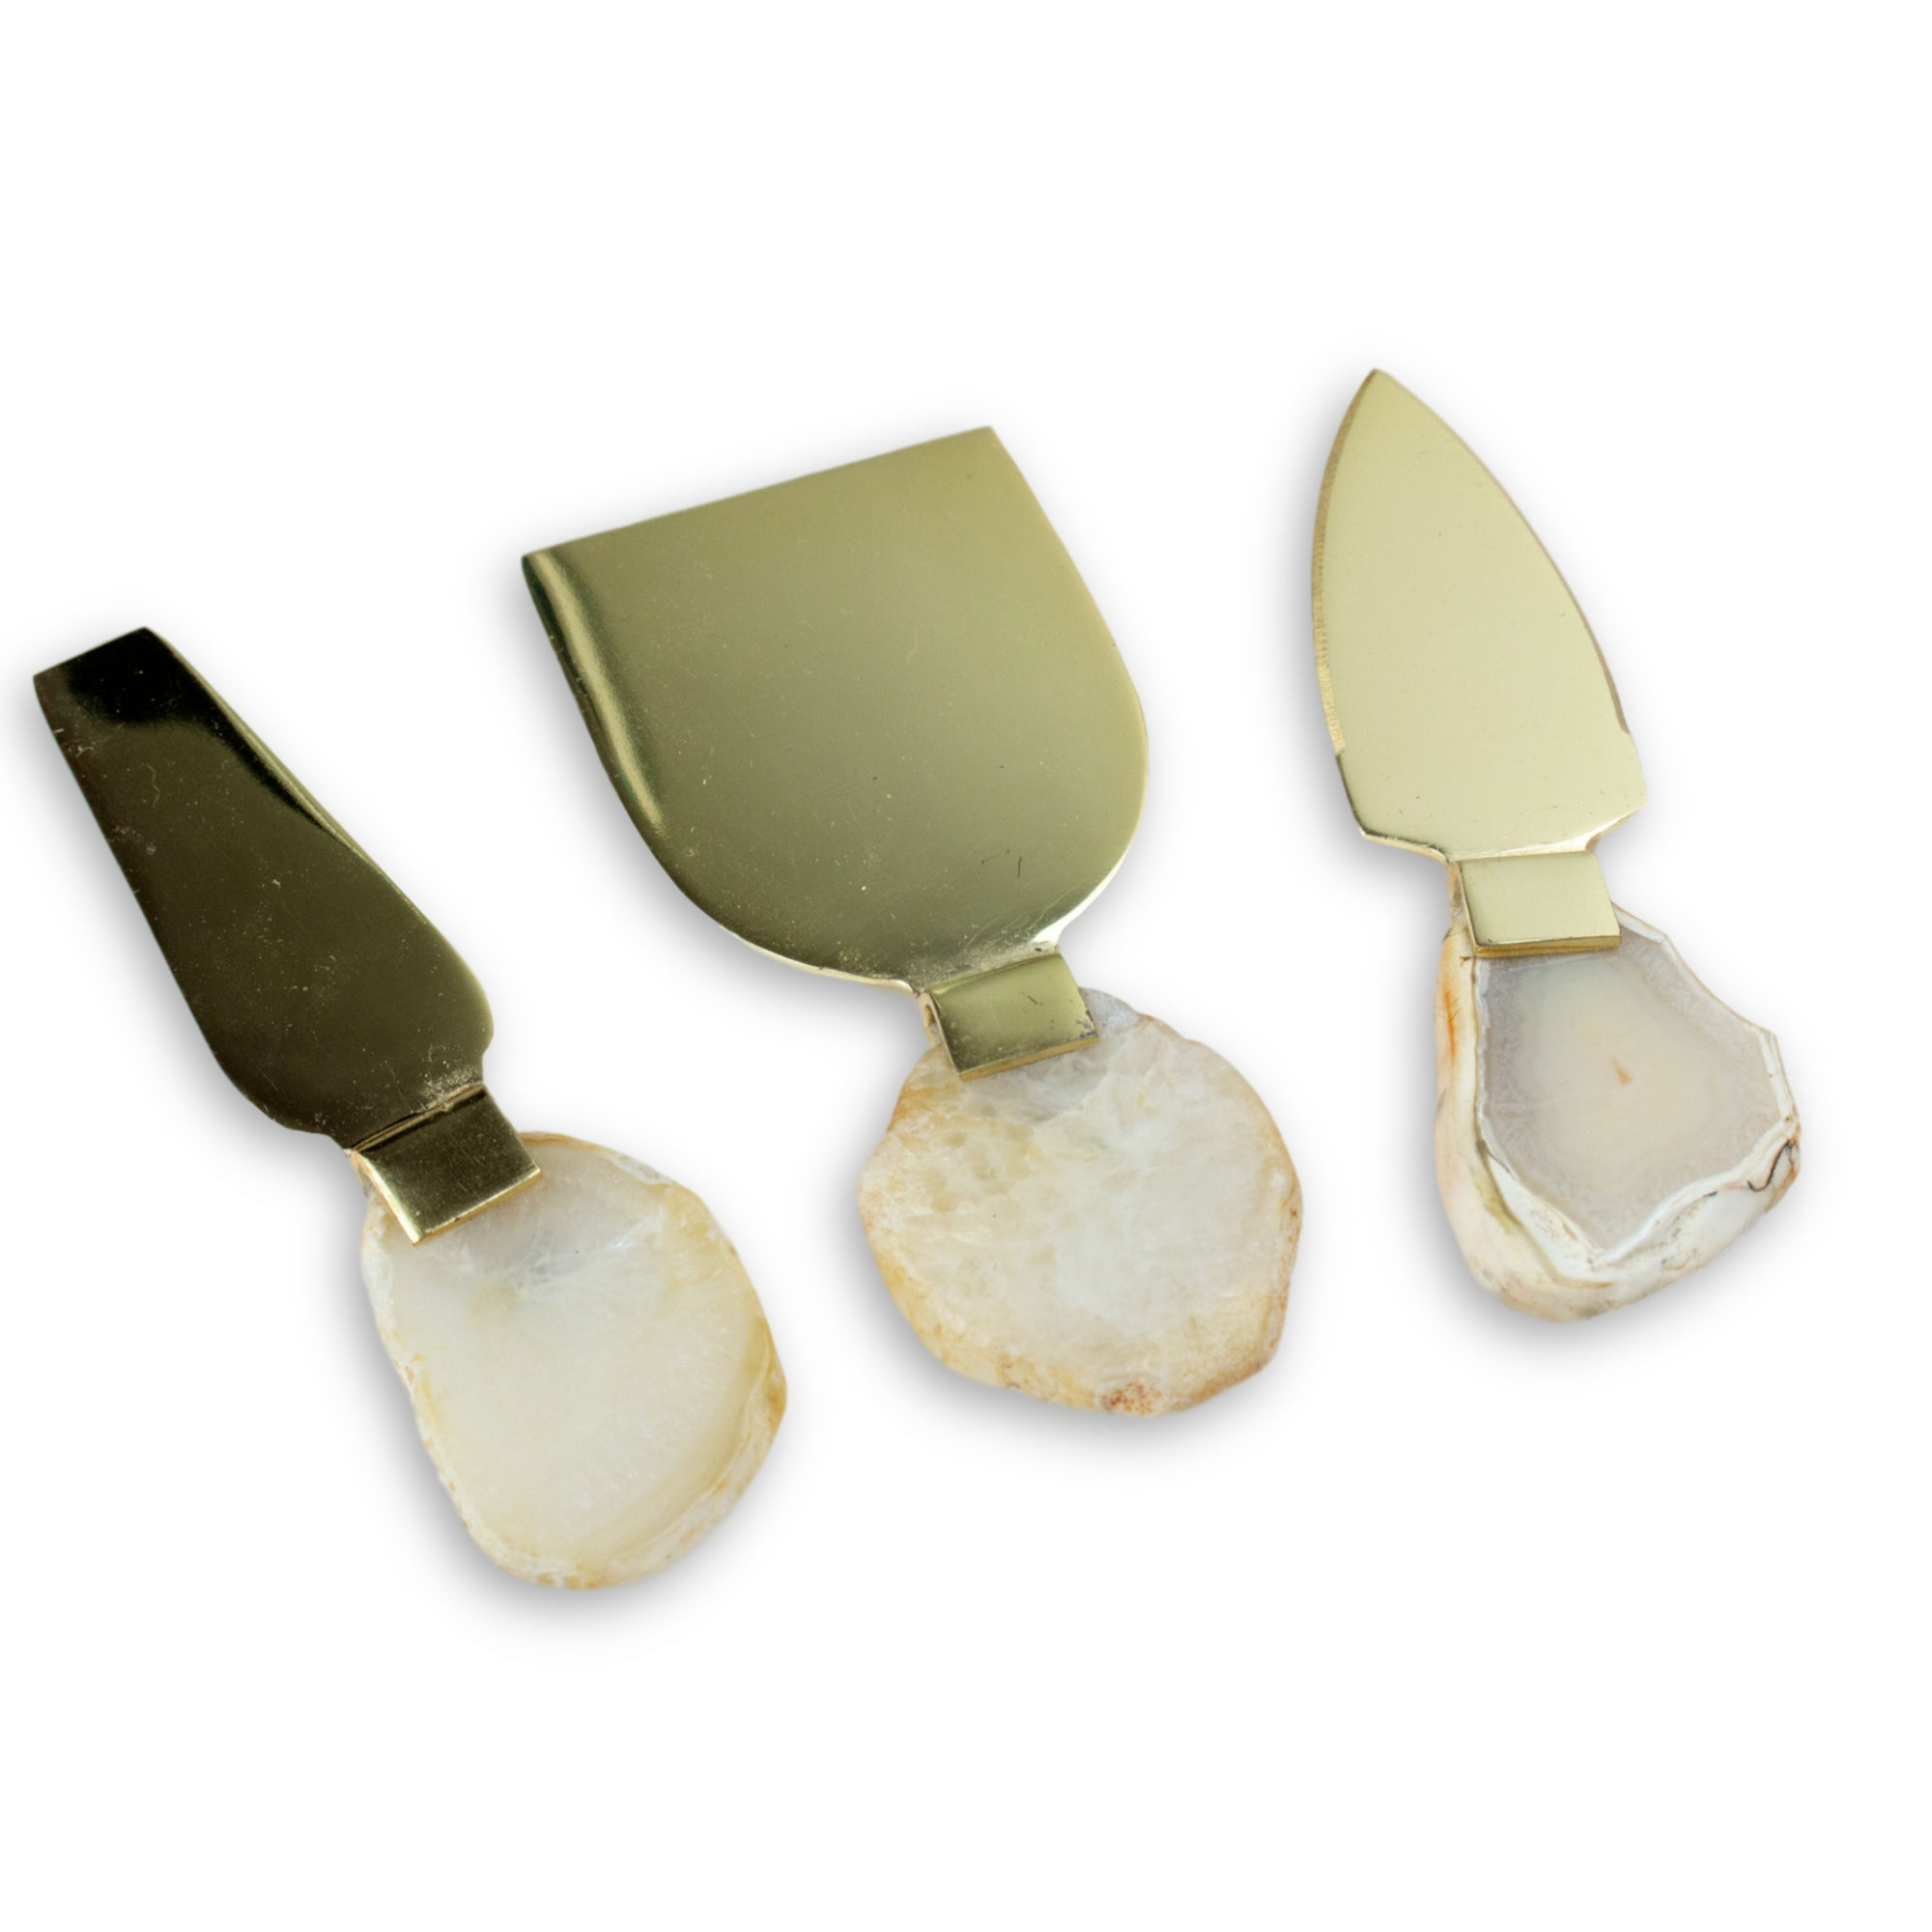 Set of 3 Agate Cheese Knives